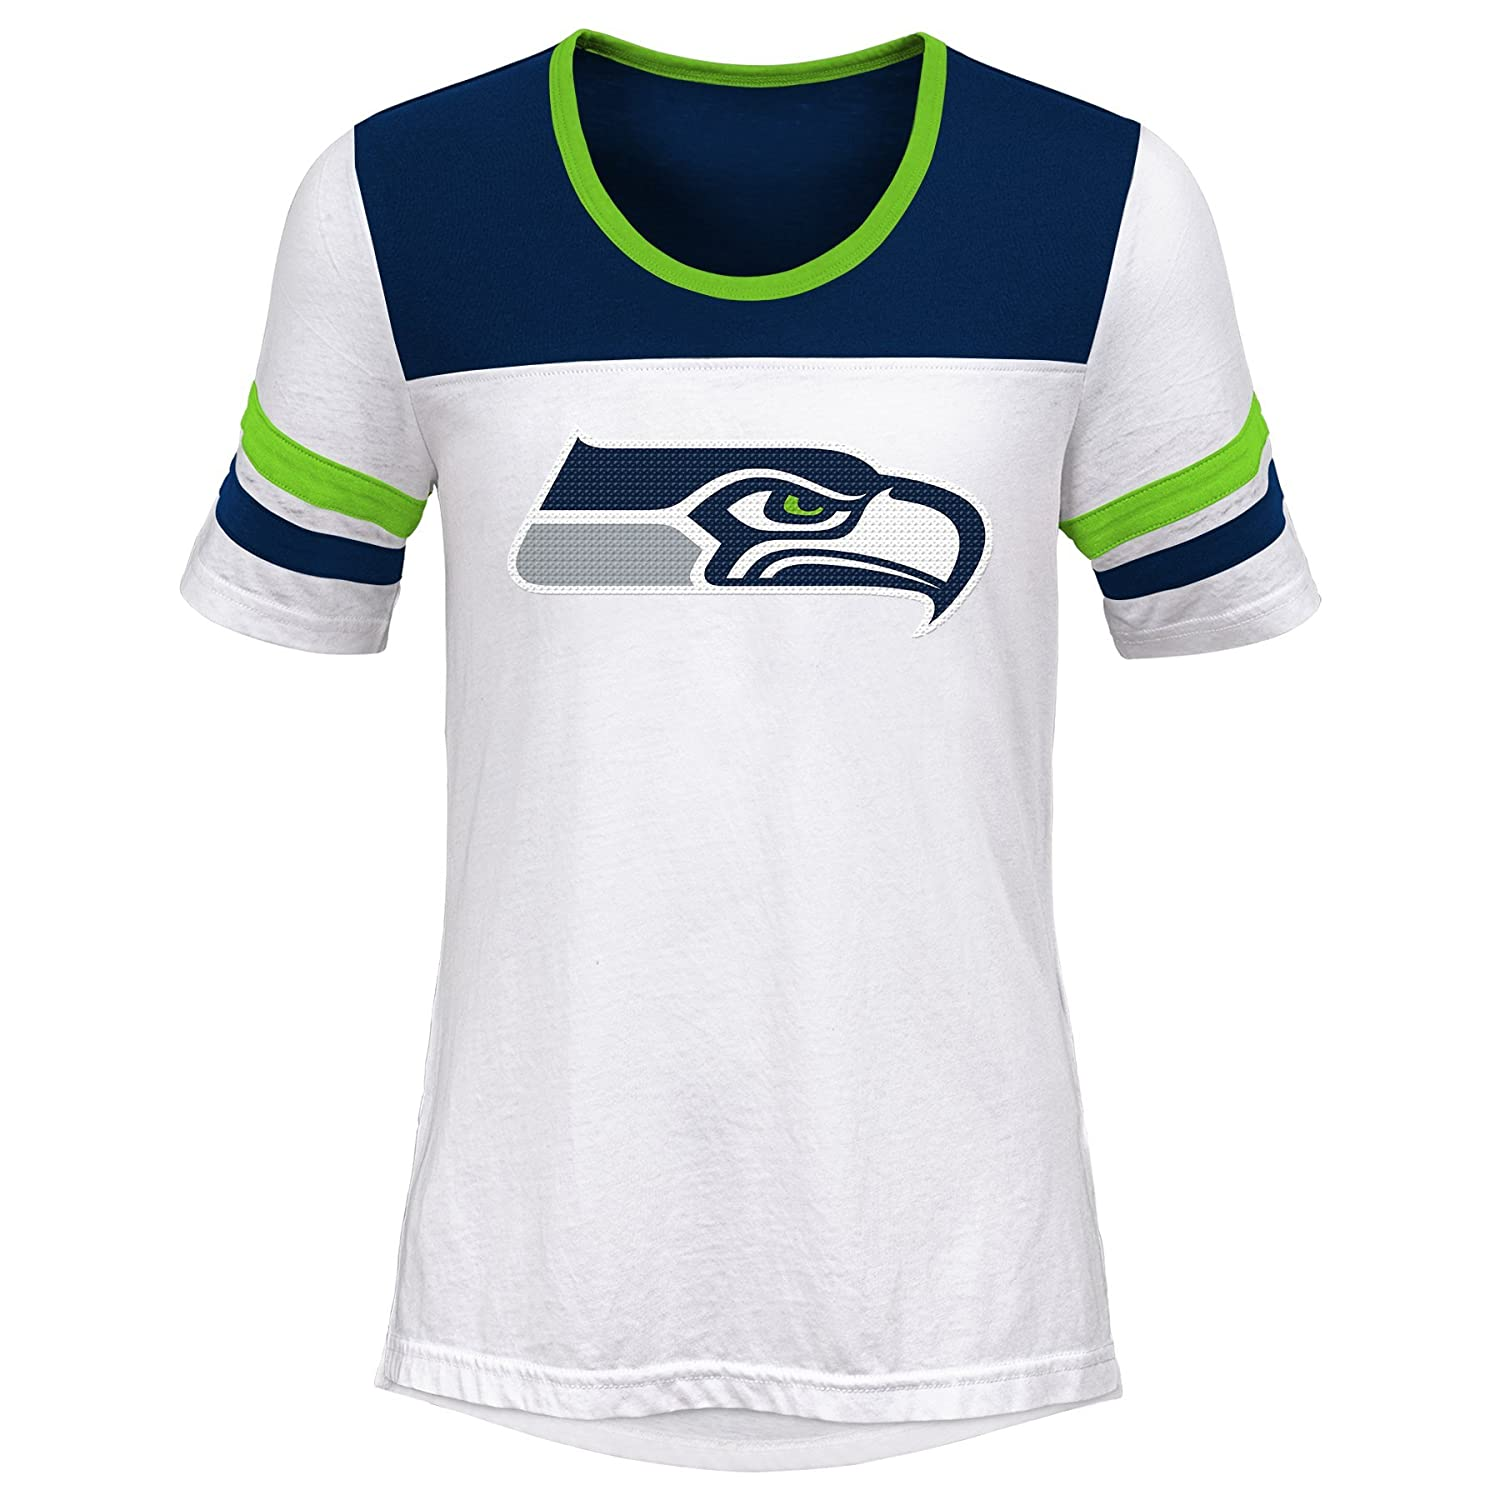 Youth Small 7-8 Outerstuff NFL NFL Seattle Seahawks Youth Girls Tail Back Short Sleeve Tee White